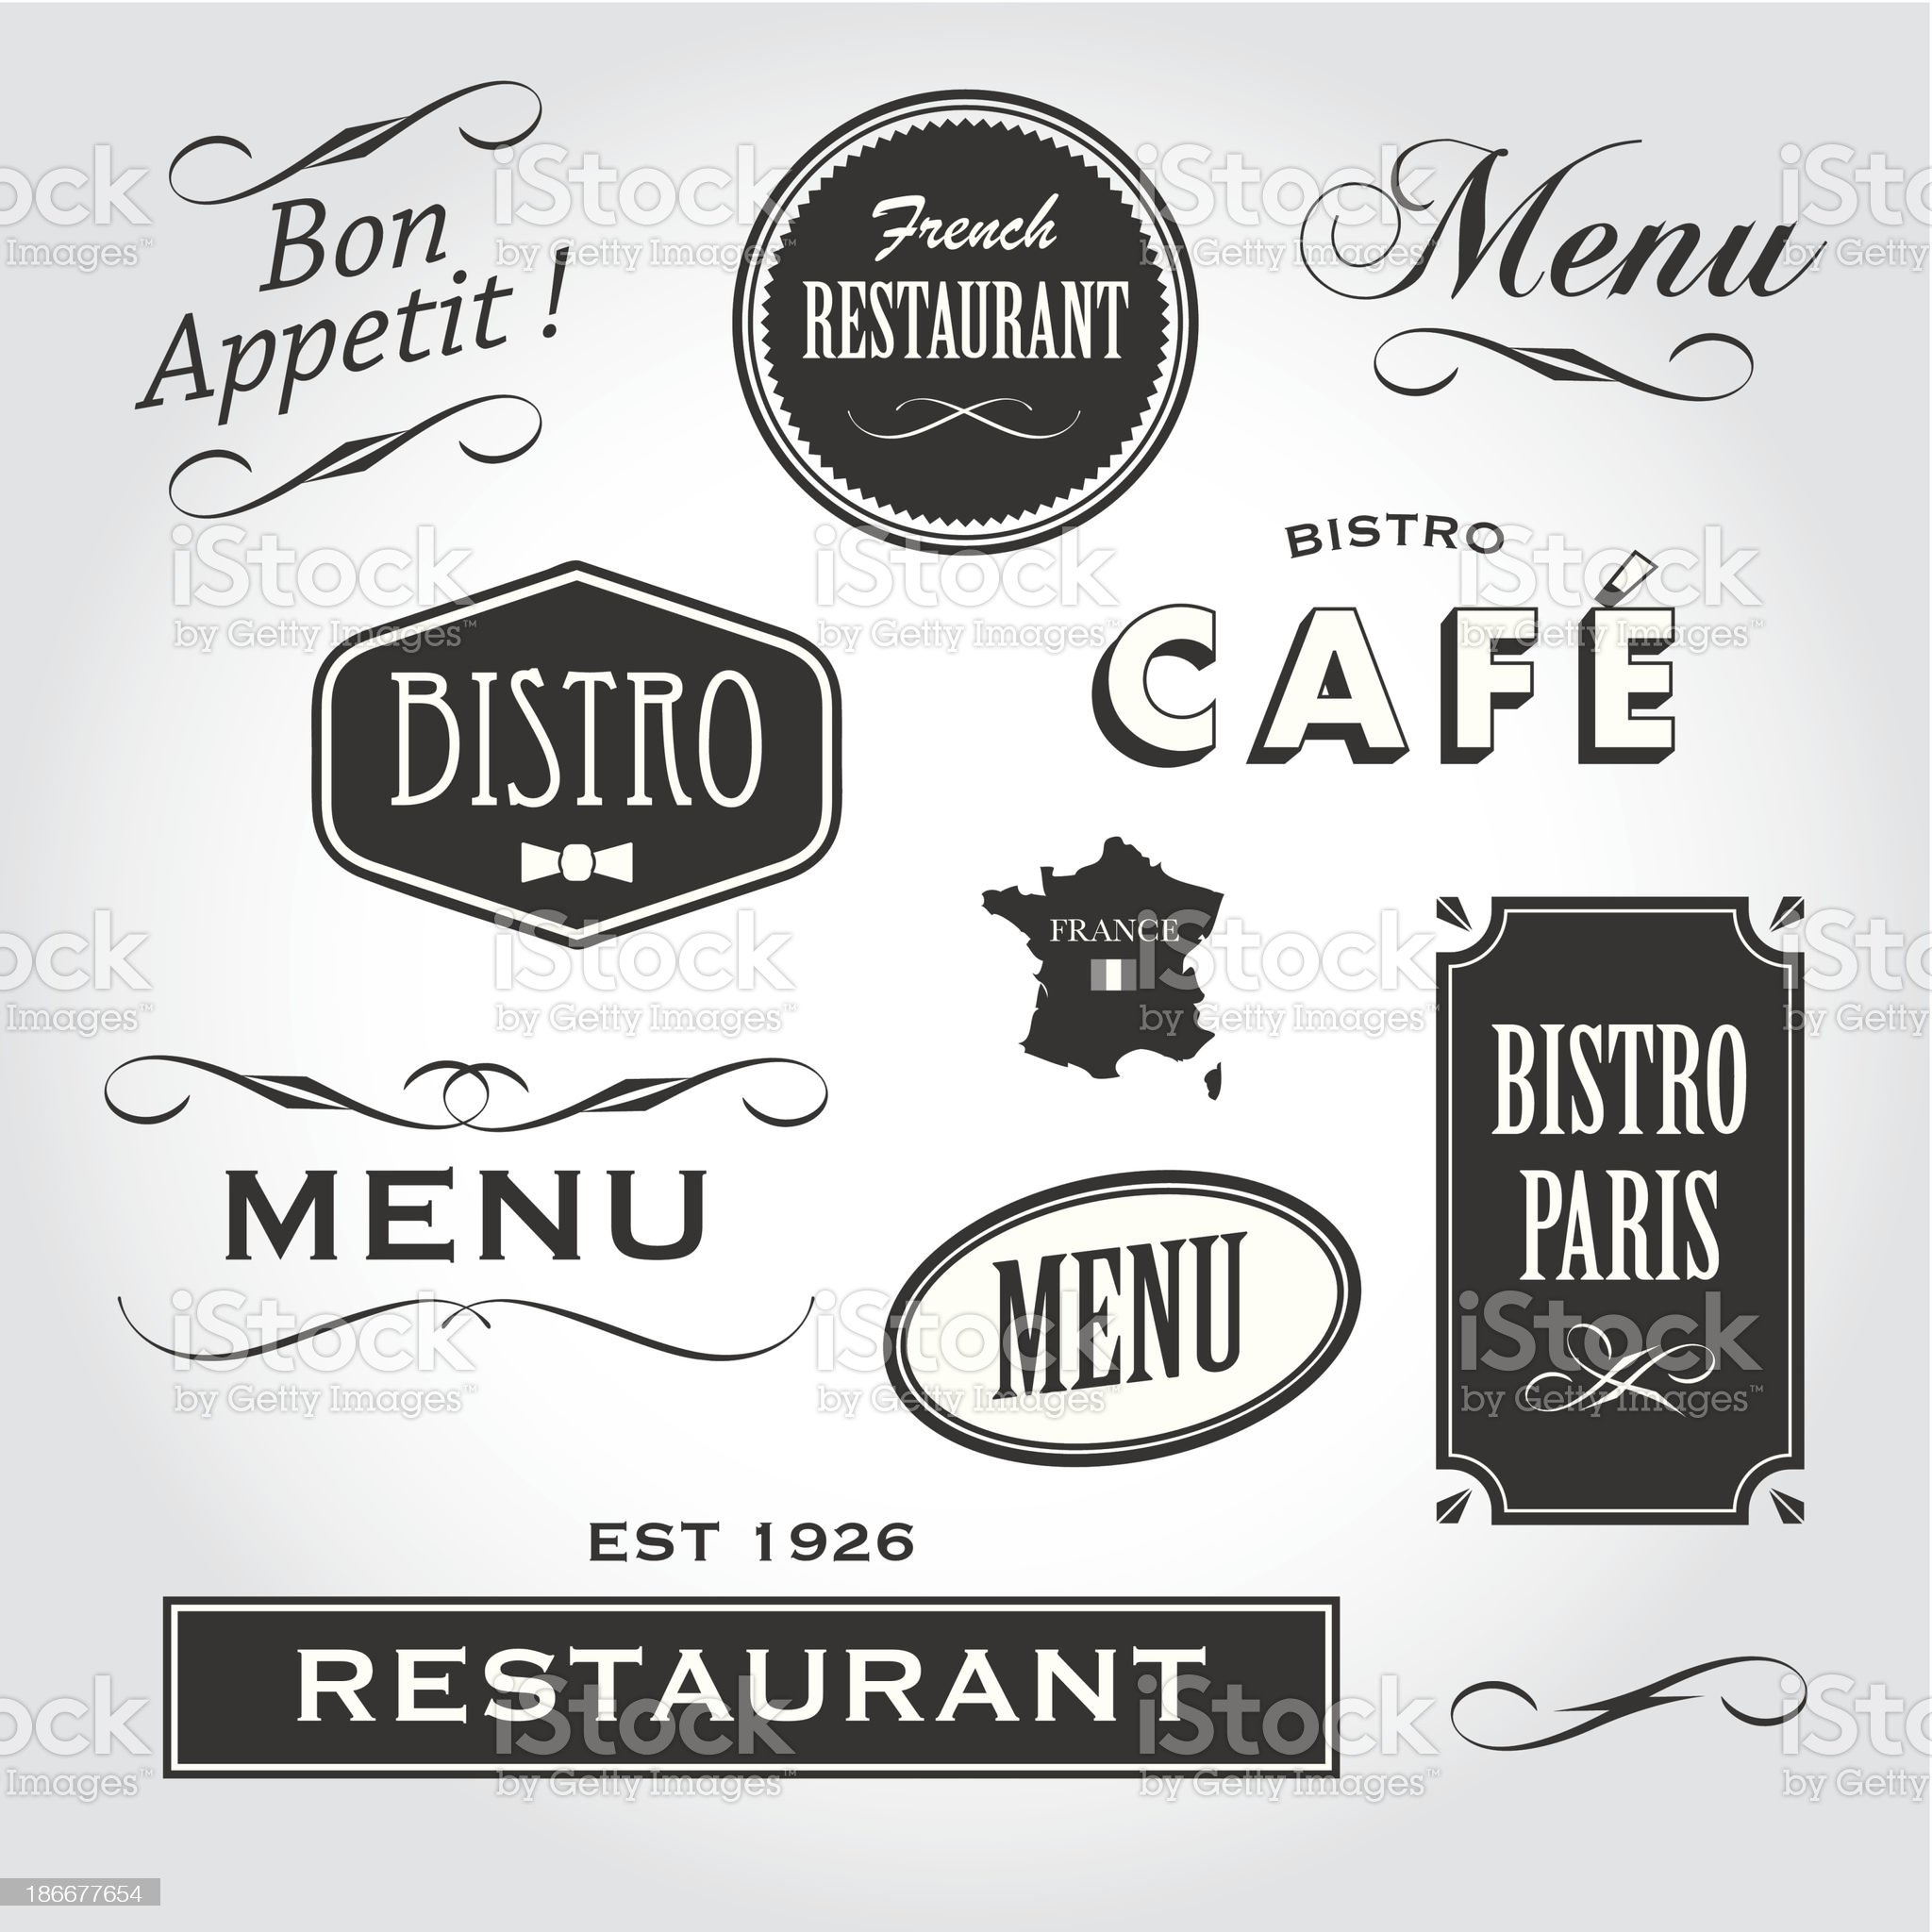 signs and symbols french restaurant royalty-free stock vector art